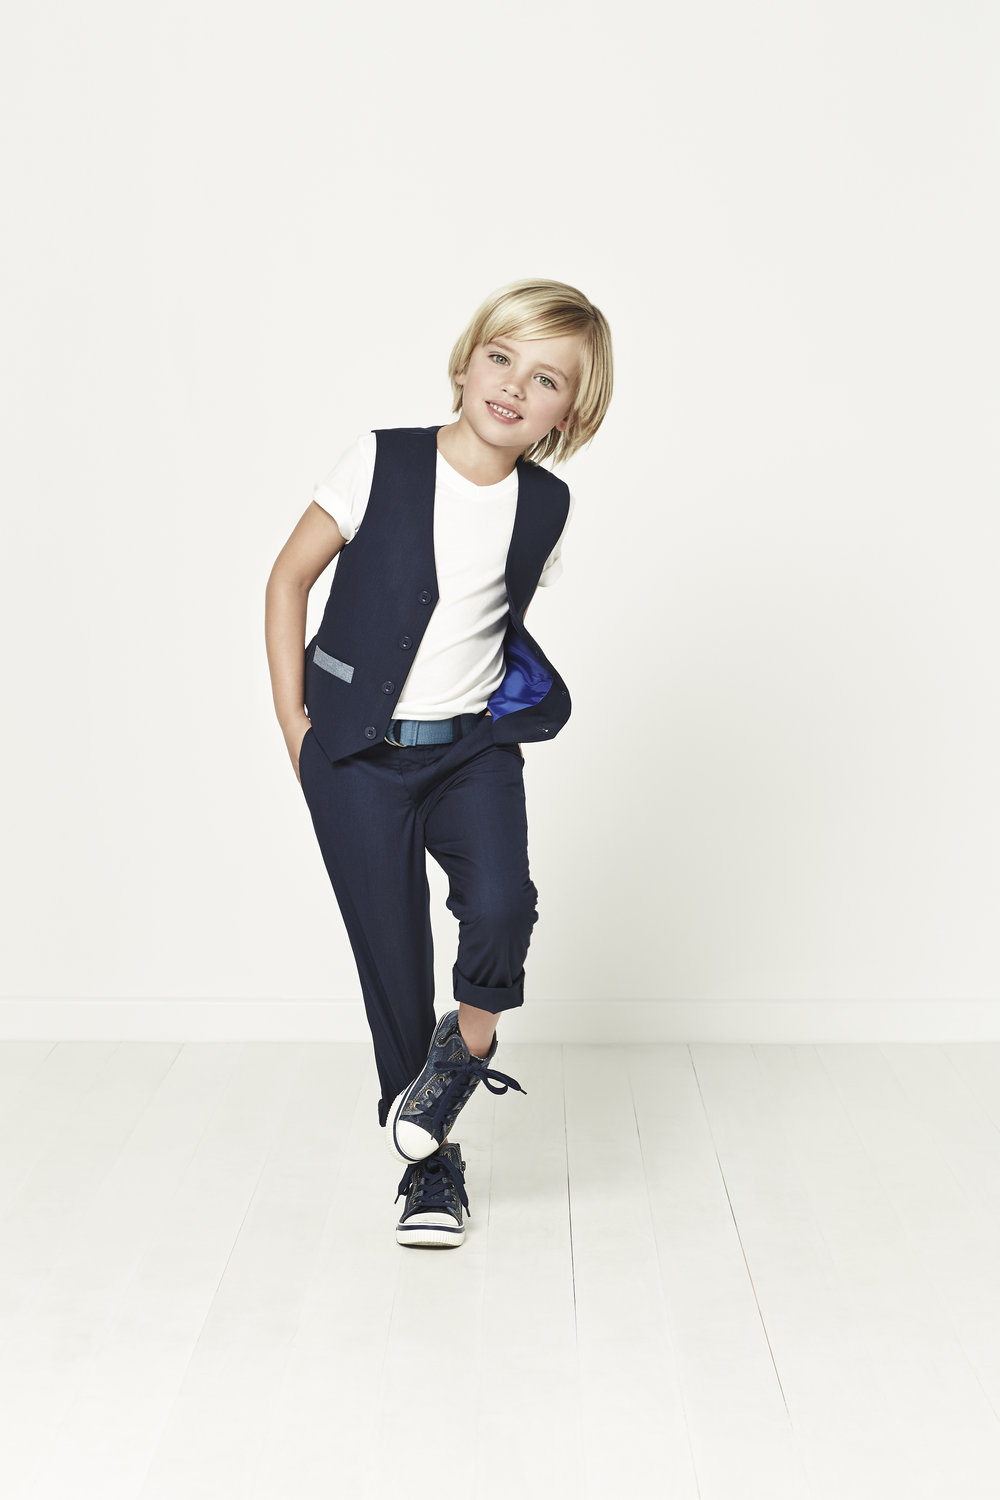 WW_KIDS_FASHION_0943 copy.jpg